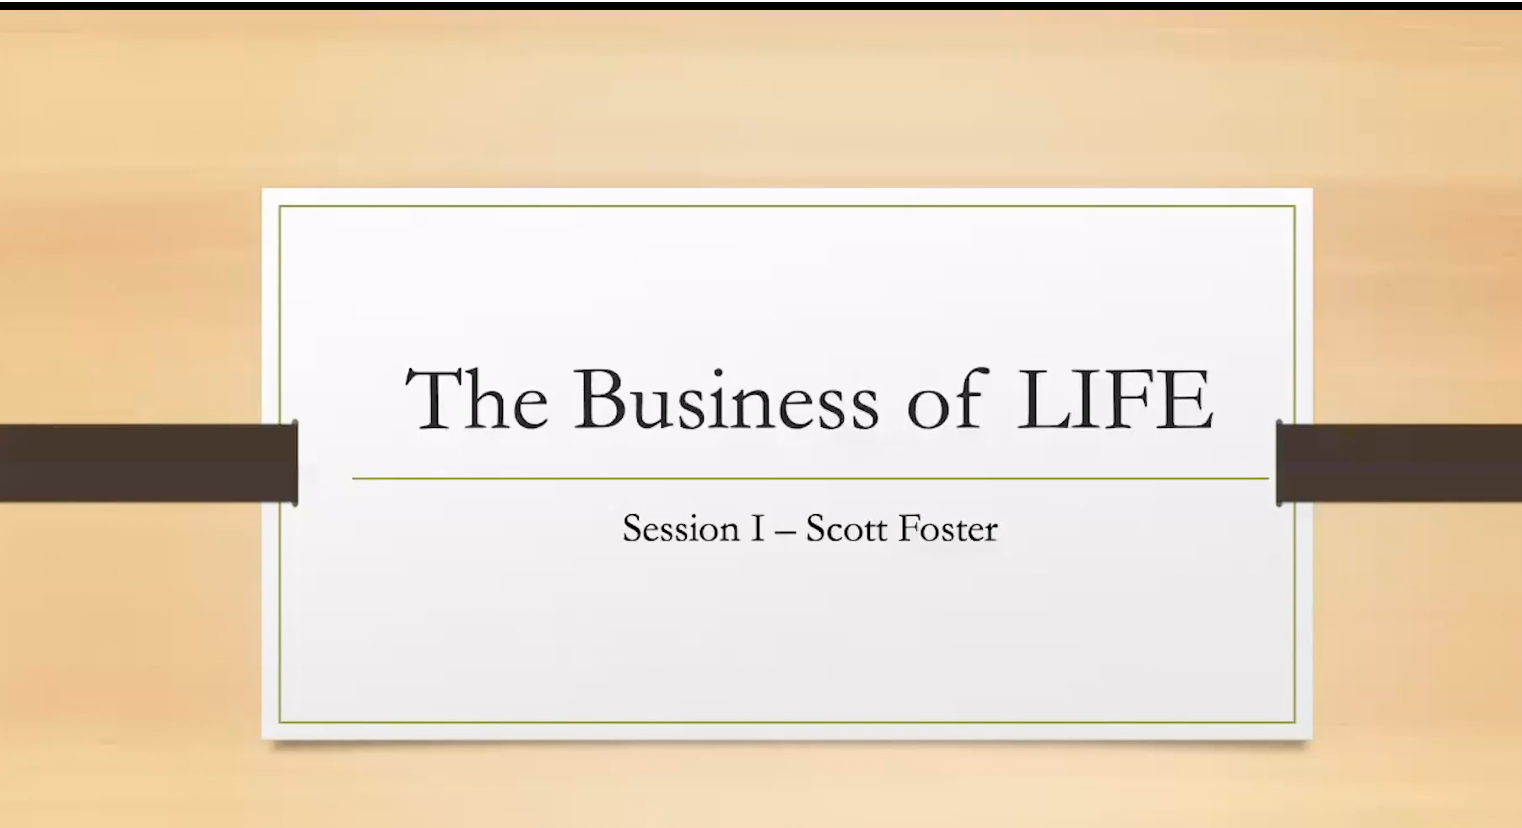 Life Term Conversions & Selling Prospects on the Advantages of Permanent Life Insurance with Scott Foster + Steve Cannon